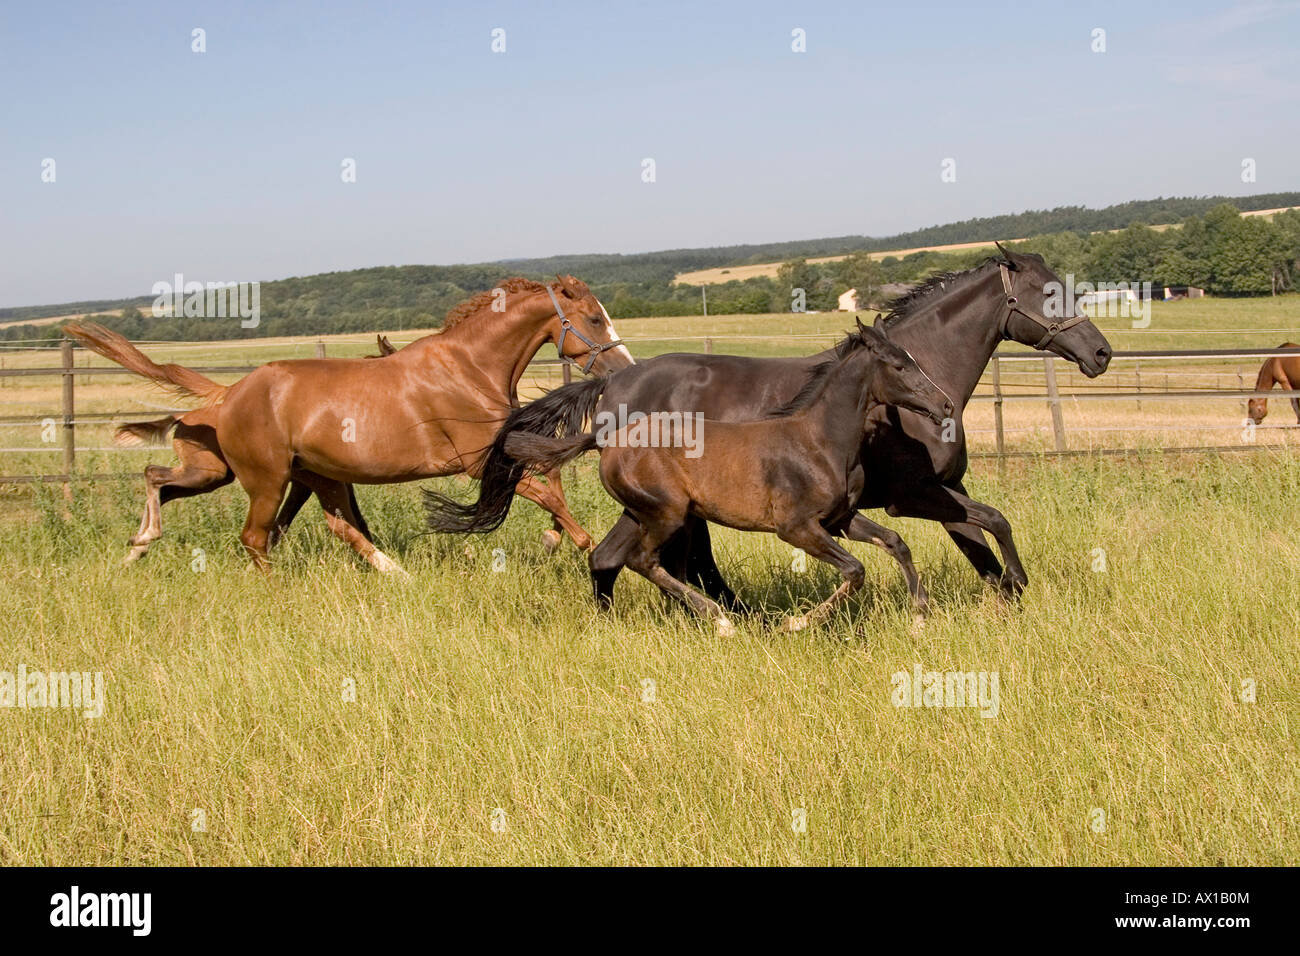 Two mares galloping over a meadow alongside their foals - Stock Image